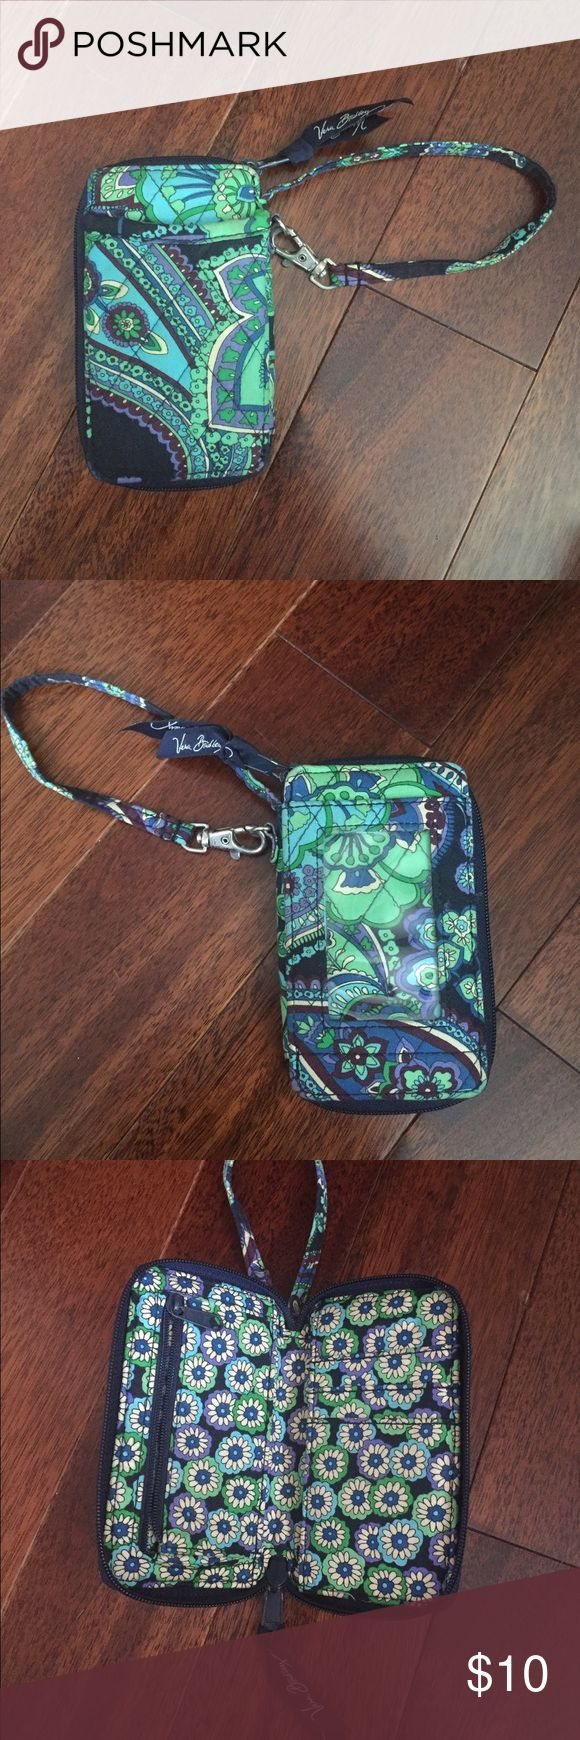 Vera Bradley wristlet wallet Vera Bradley wristlet wallet with id, great for money and credit cards on the go Bags Clutches & Wristlets